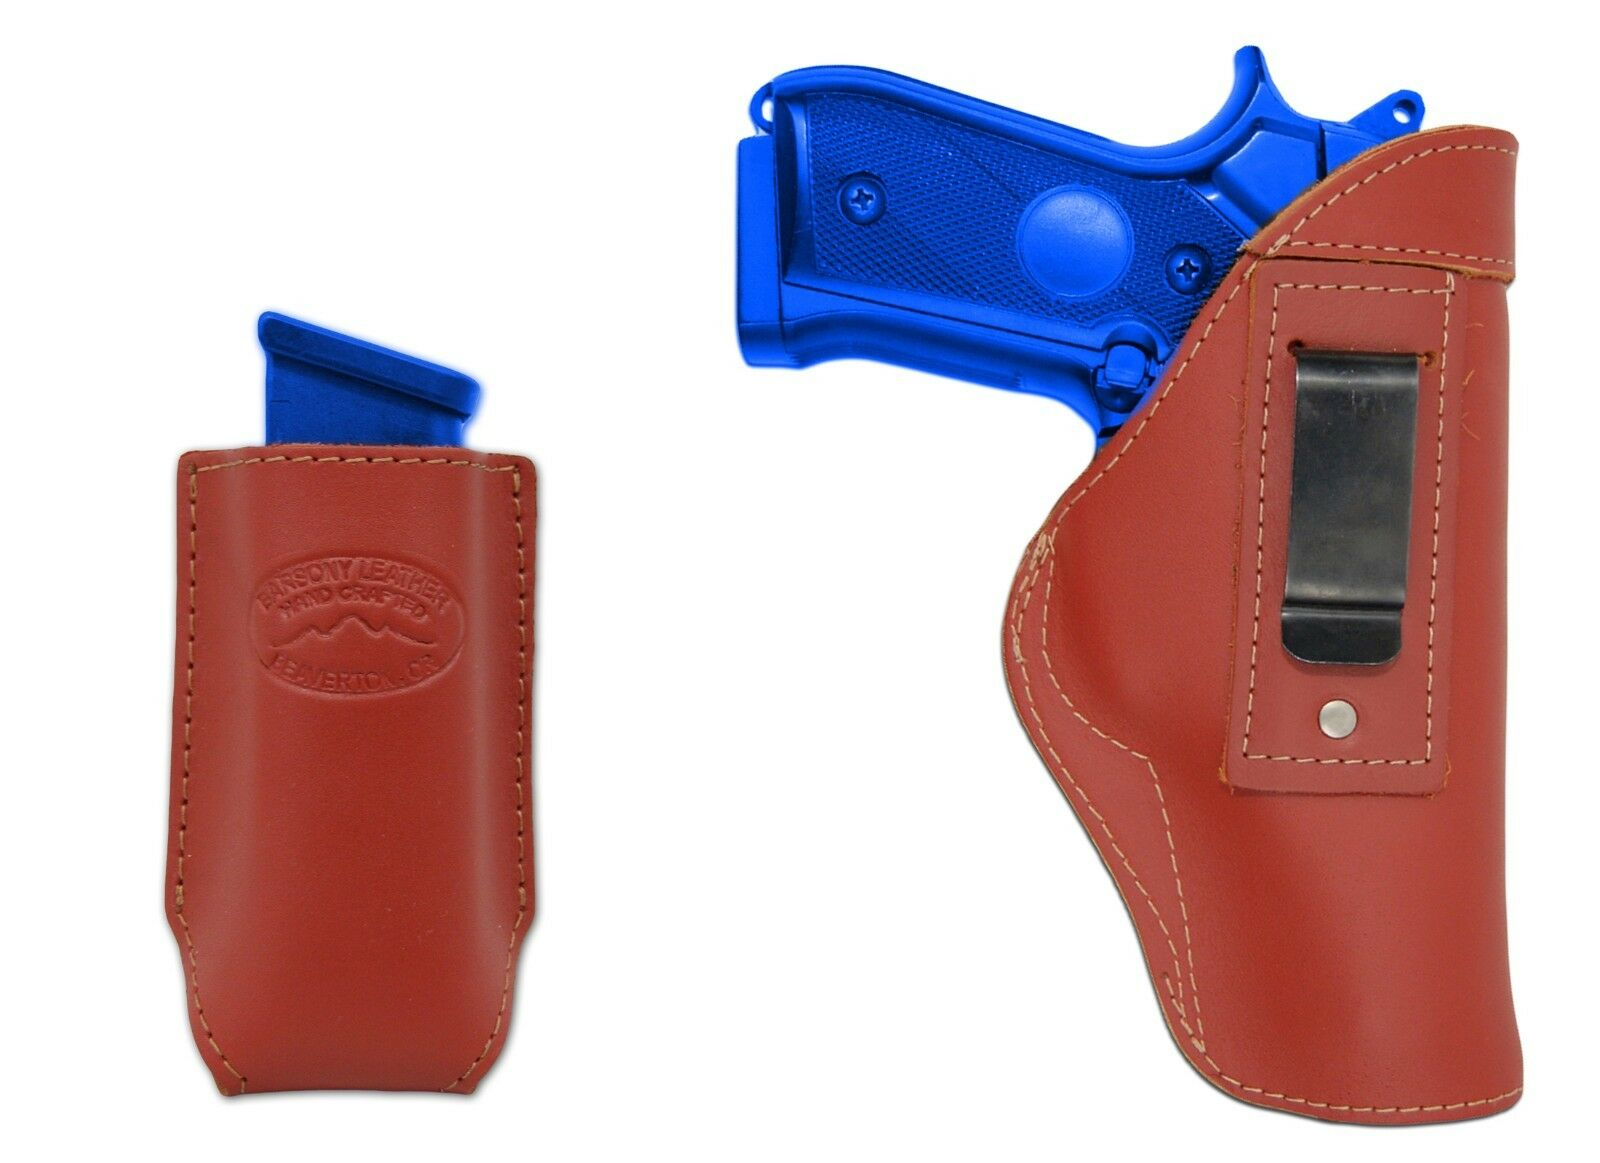 New Barsony Burgundy Leder IWB Holster + Mag Pouch Pouch Mag for Taurus Full Größe 9mm 40 bc8886